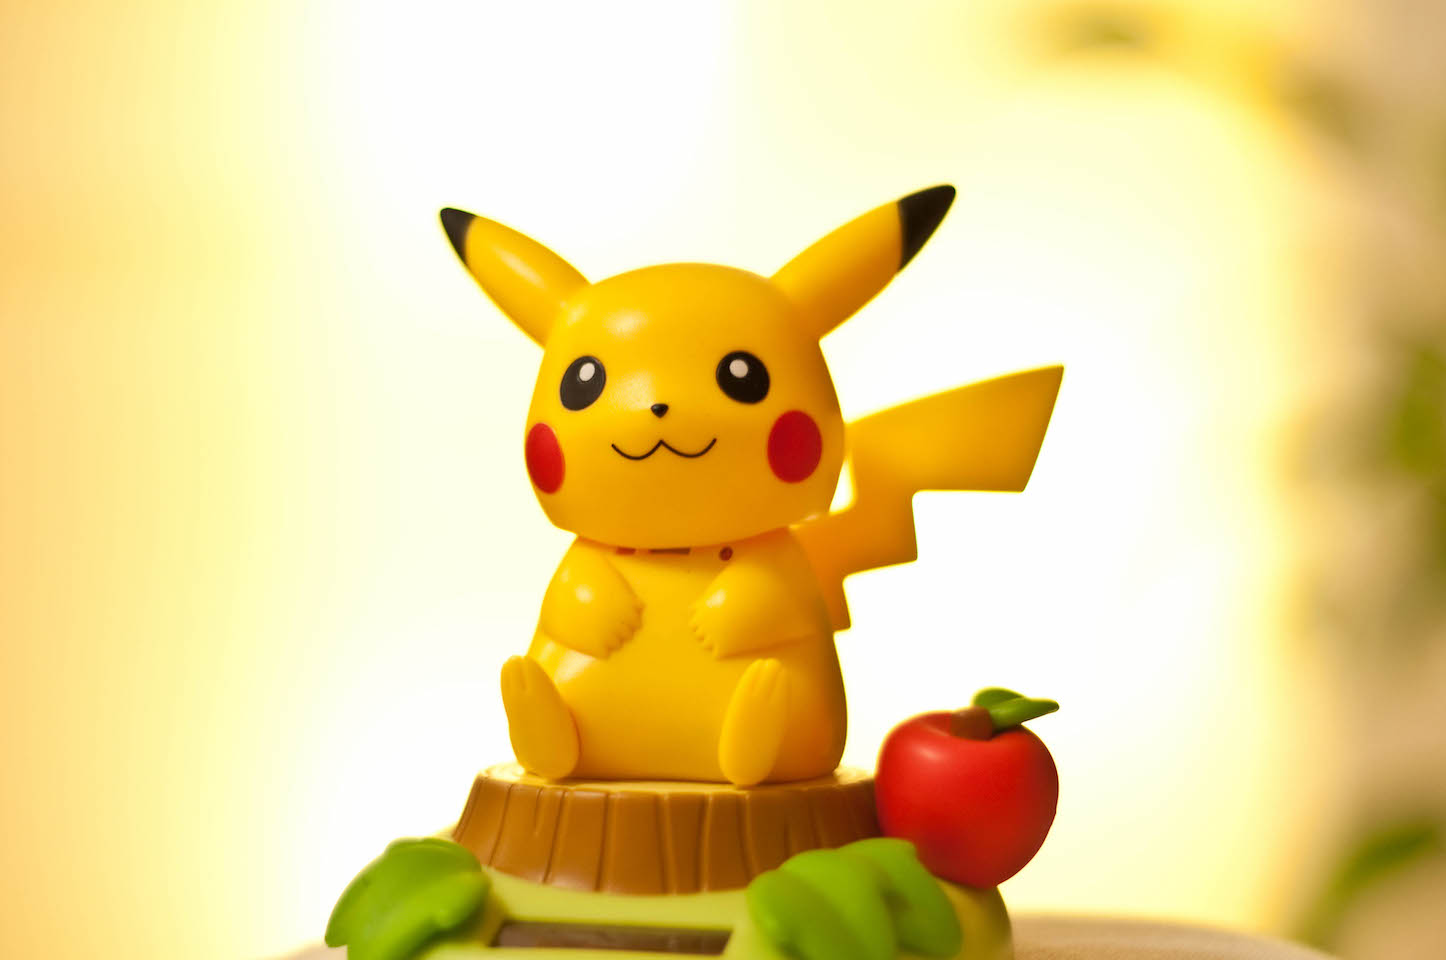 pikachu-sitting-on-top-of-a-tree-trunk.jpg